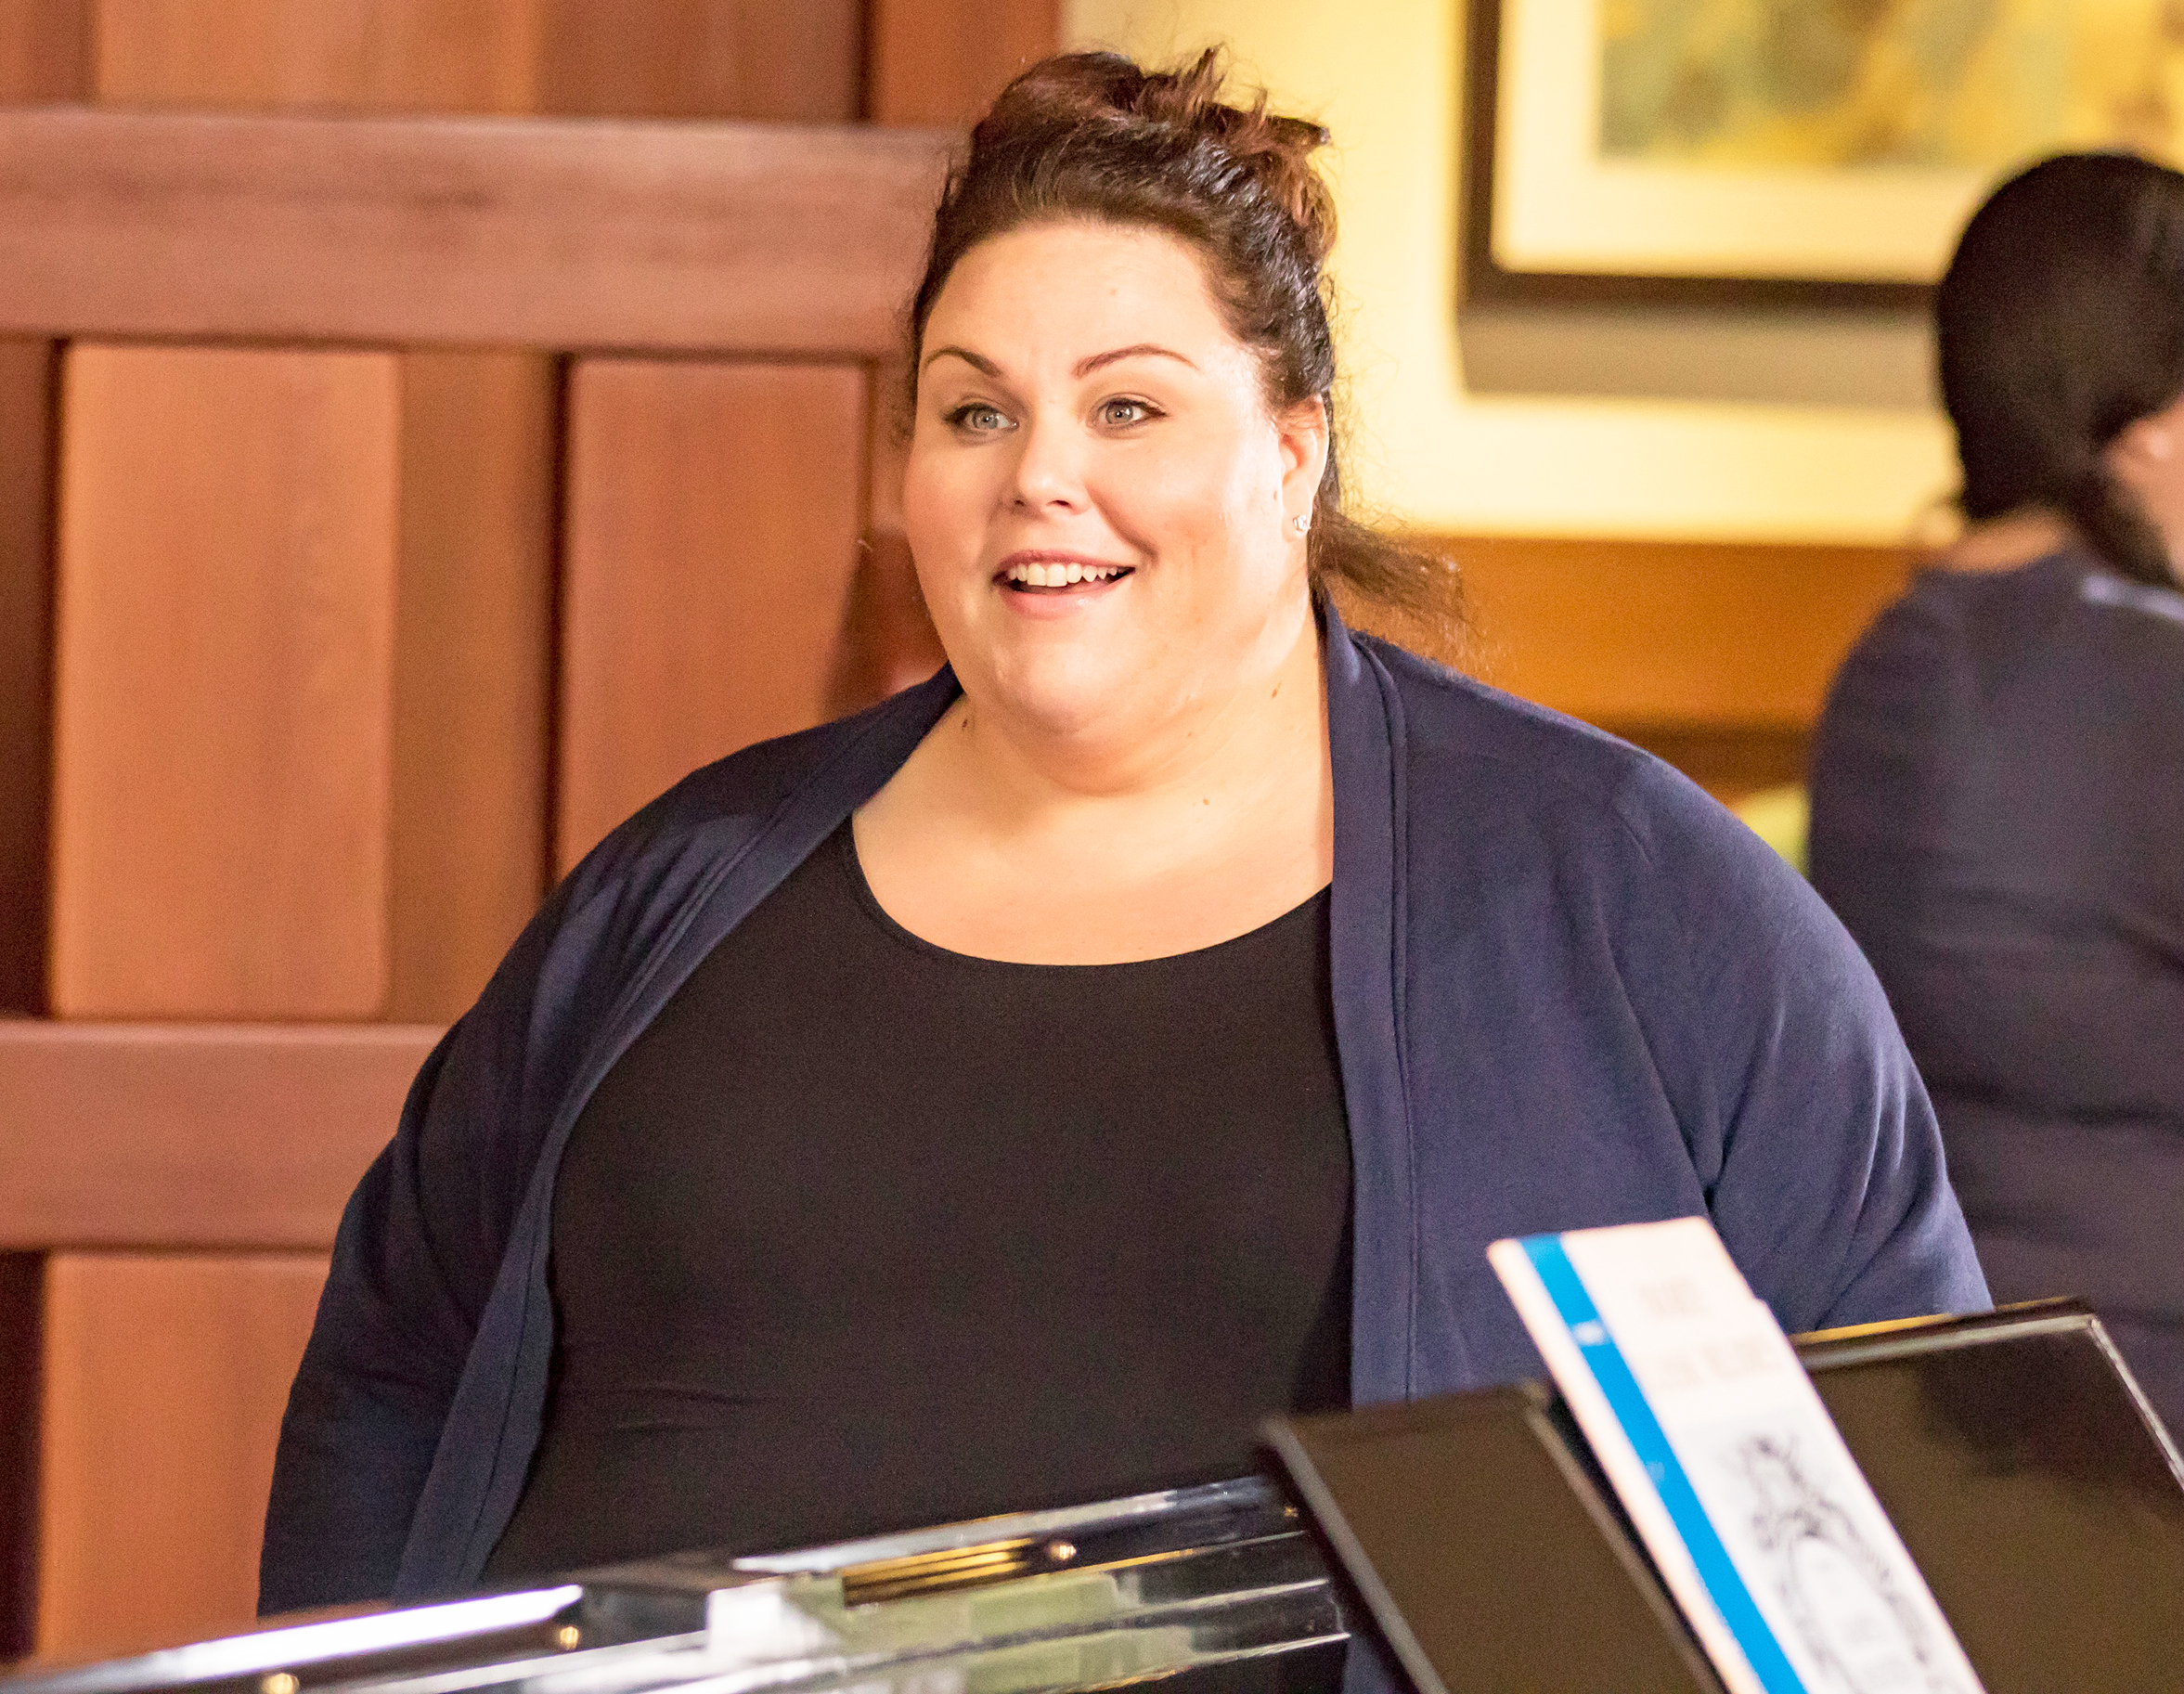 Chrissy Metz as Kate Pearson in This Is Us